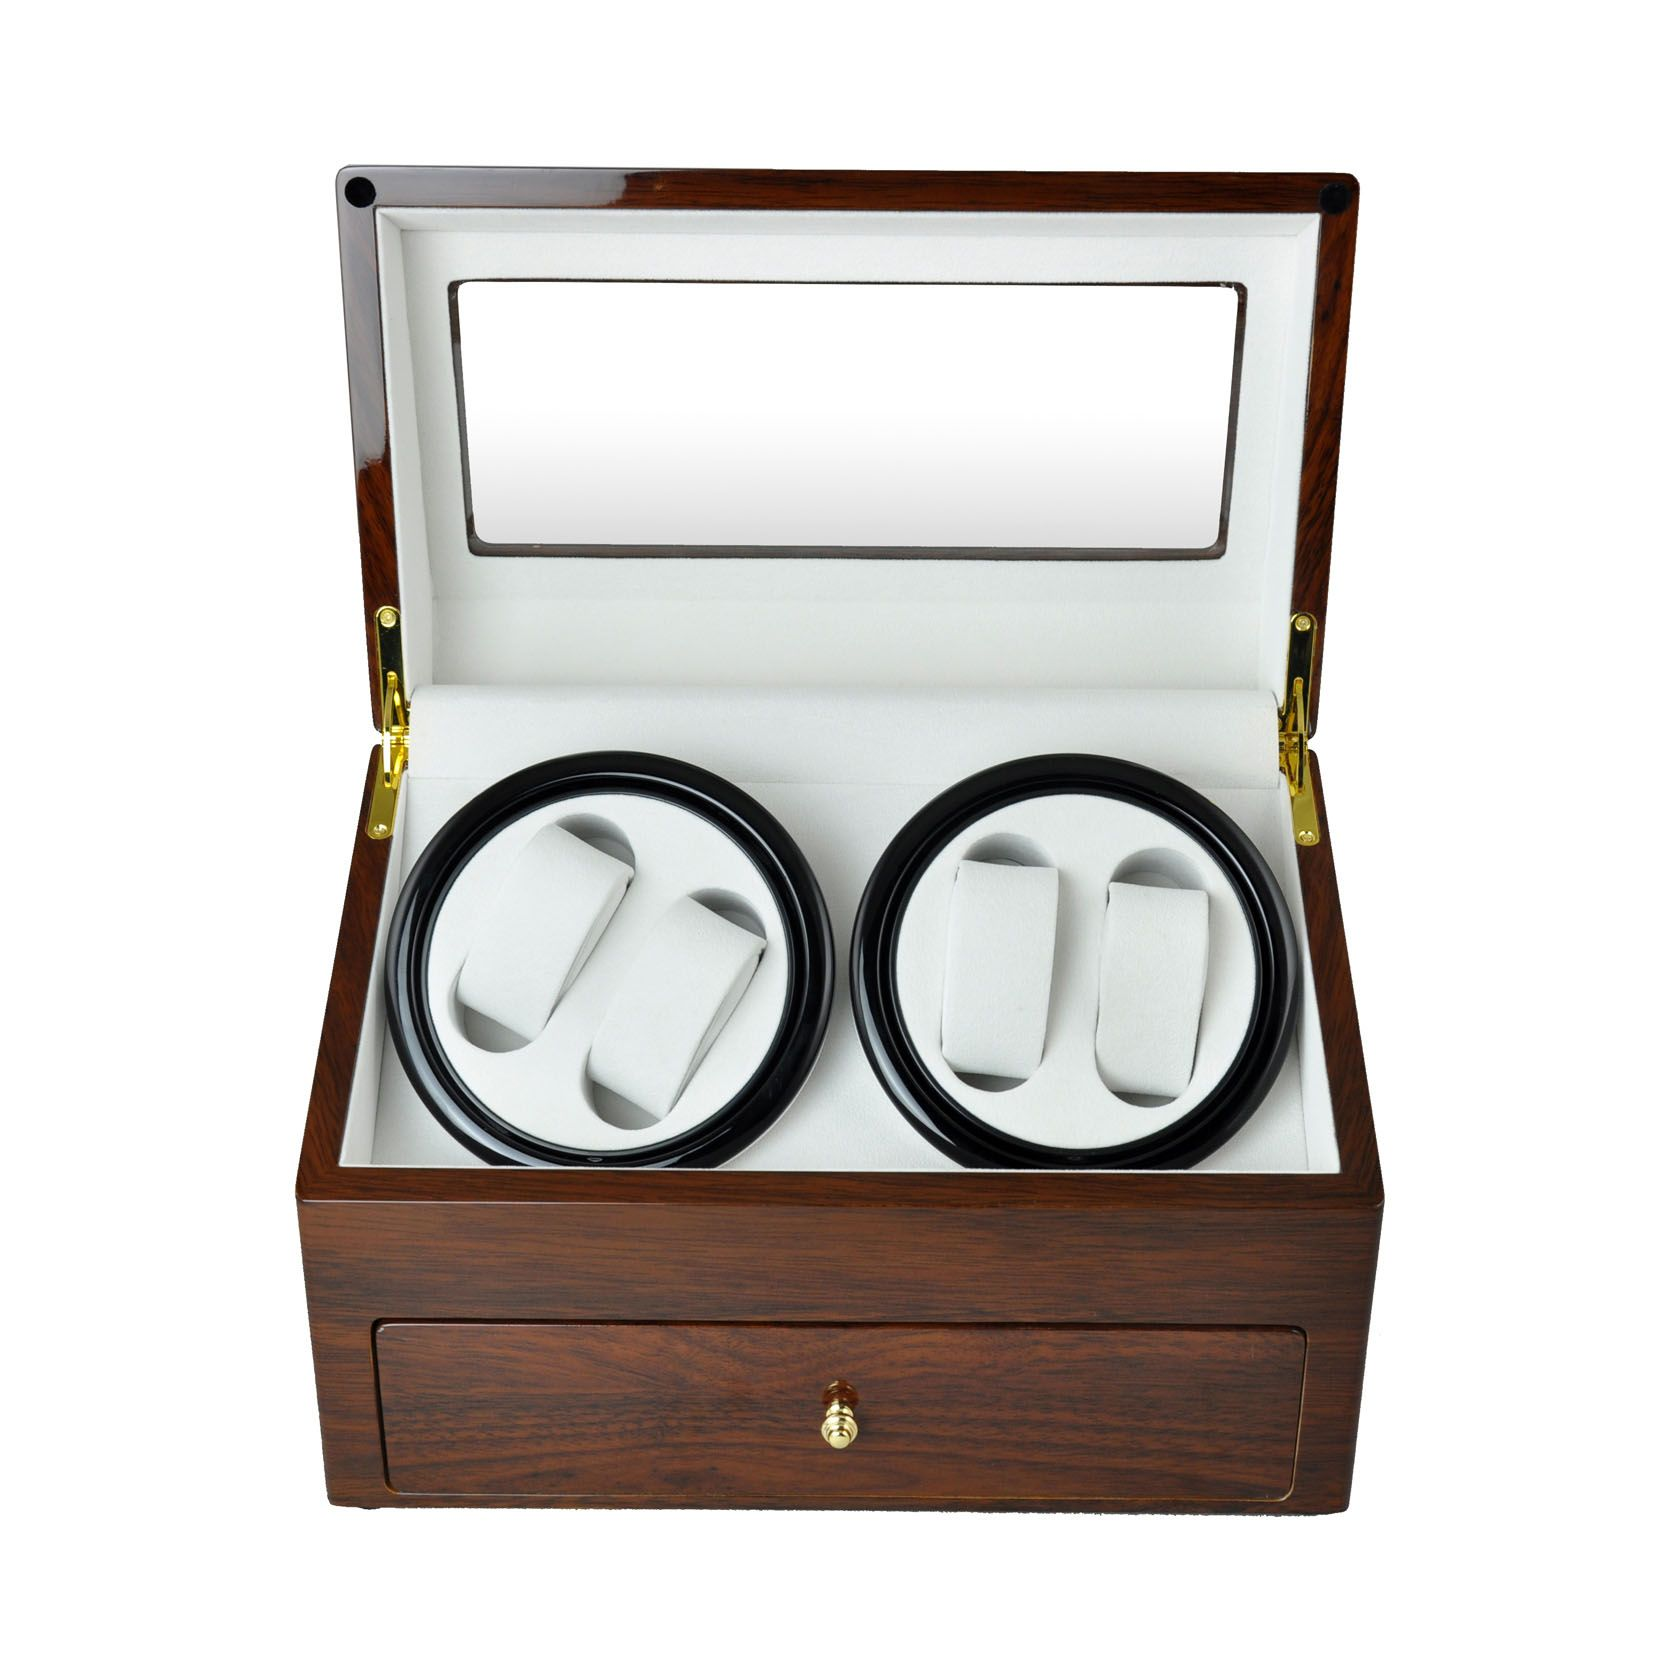 High gloss Golden Oak wooden Automatic Watch Winder display box with Apricot leather interior  $219.95  Size: 34.5×18.7×21.7cm Super quiet Japanese motor Elegant design with High gloss Golden Oak Finished Winders for 4 watches and another 4 compartments for watches in drawer 9 programs mode and TPD (turns per day) setting Made of solid timber and gloss hardware Top quality Apricot color leather Spare space for accessories, adapter included